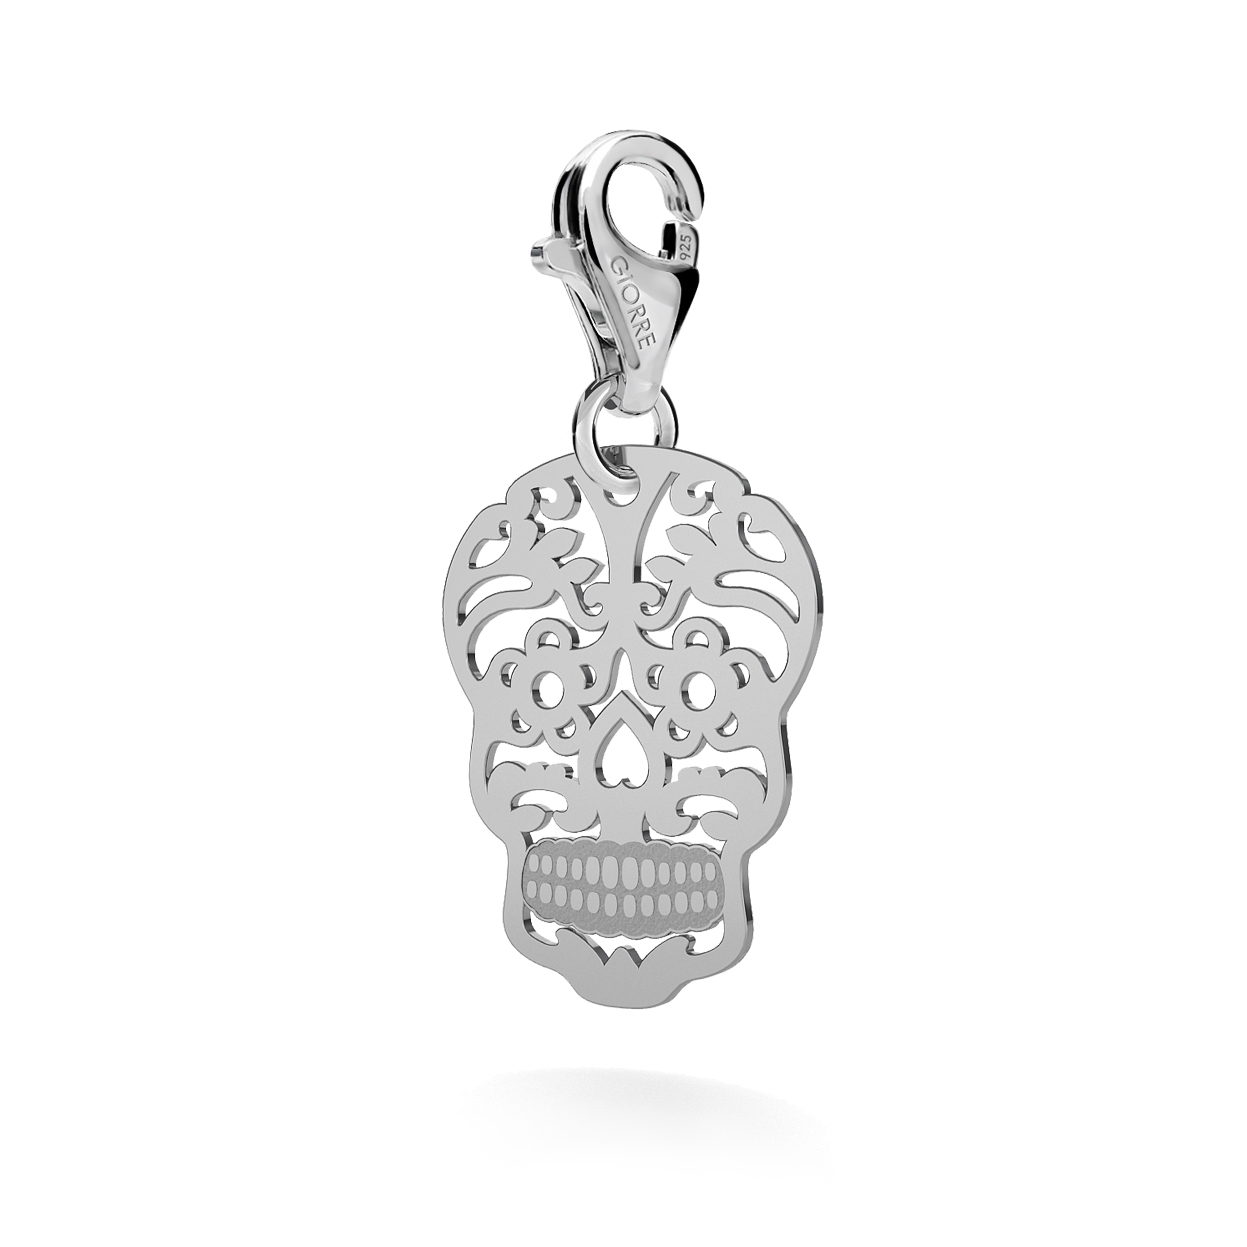 CHARM 29, SUGAR SKULL, SILVER 925,  RHODIUM OR GOLD PLATED